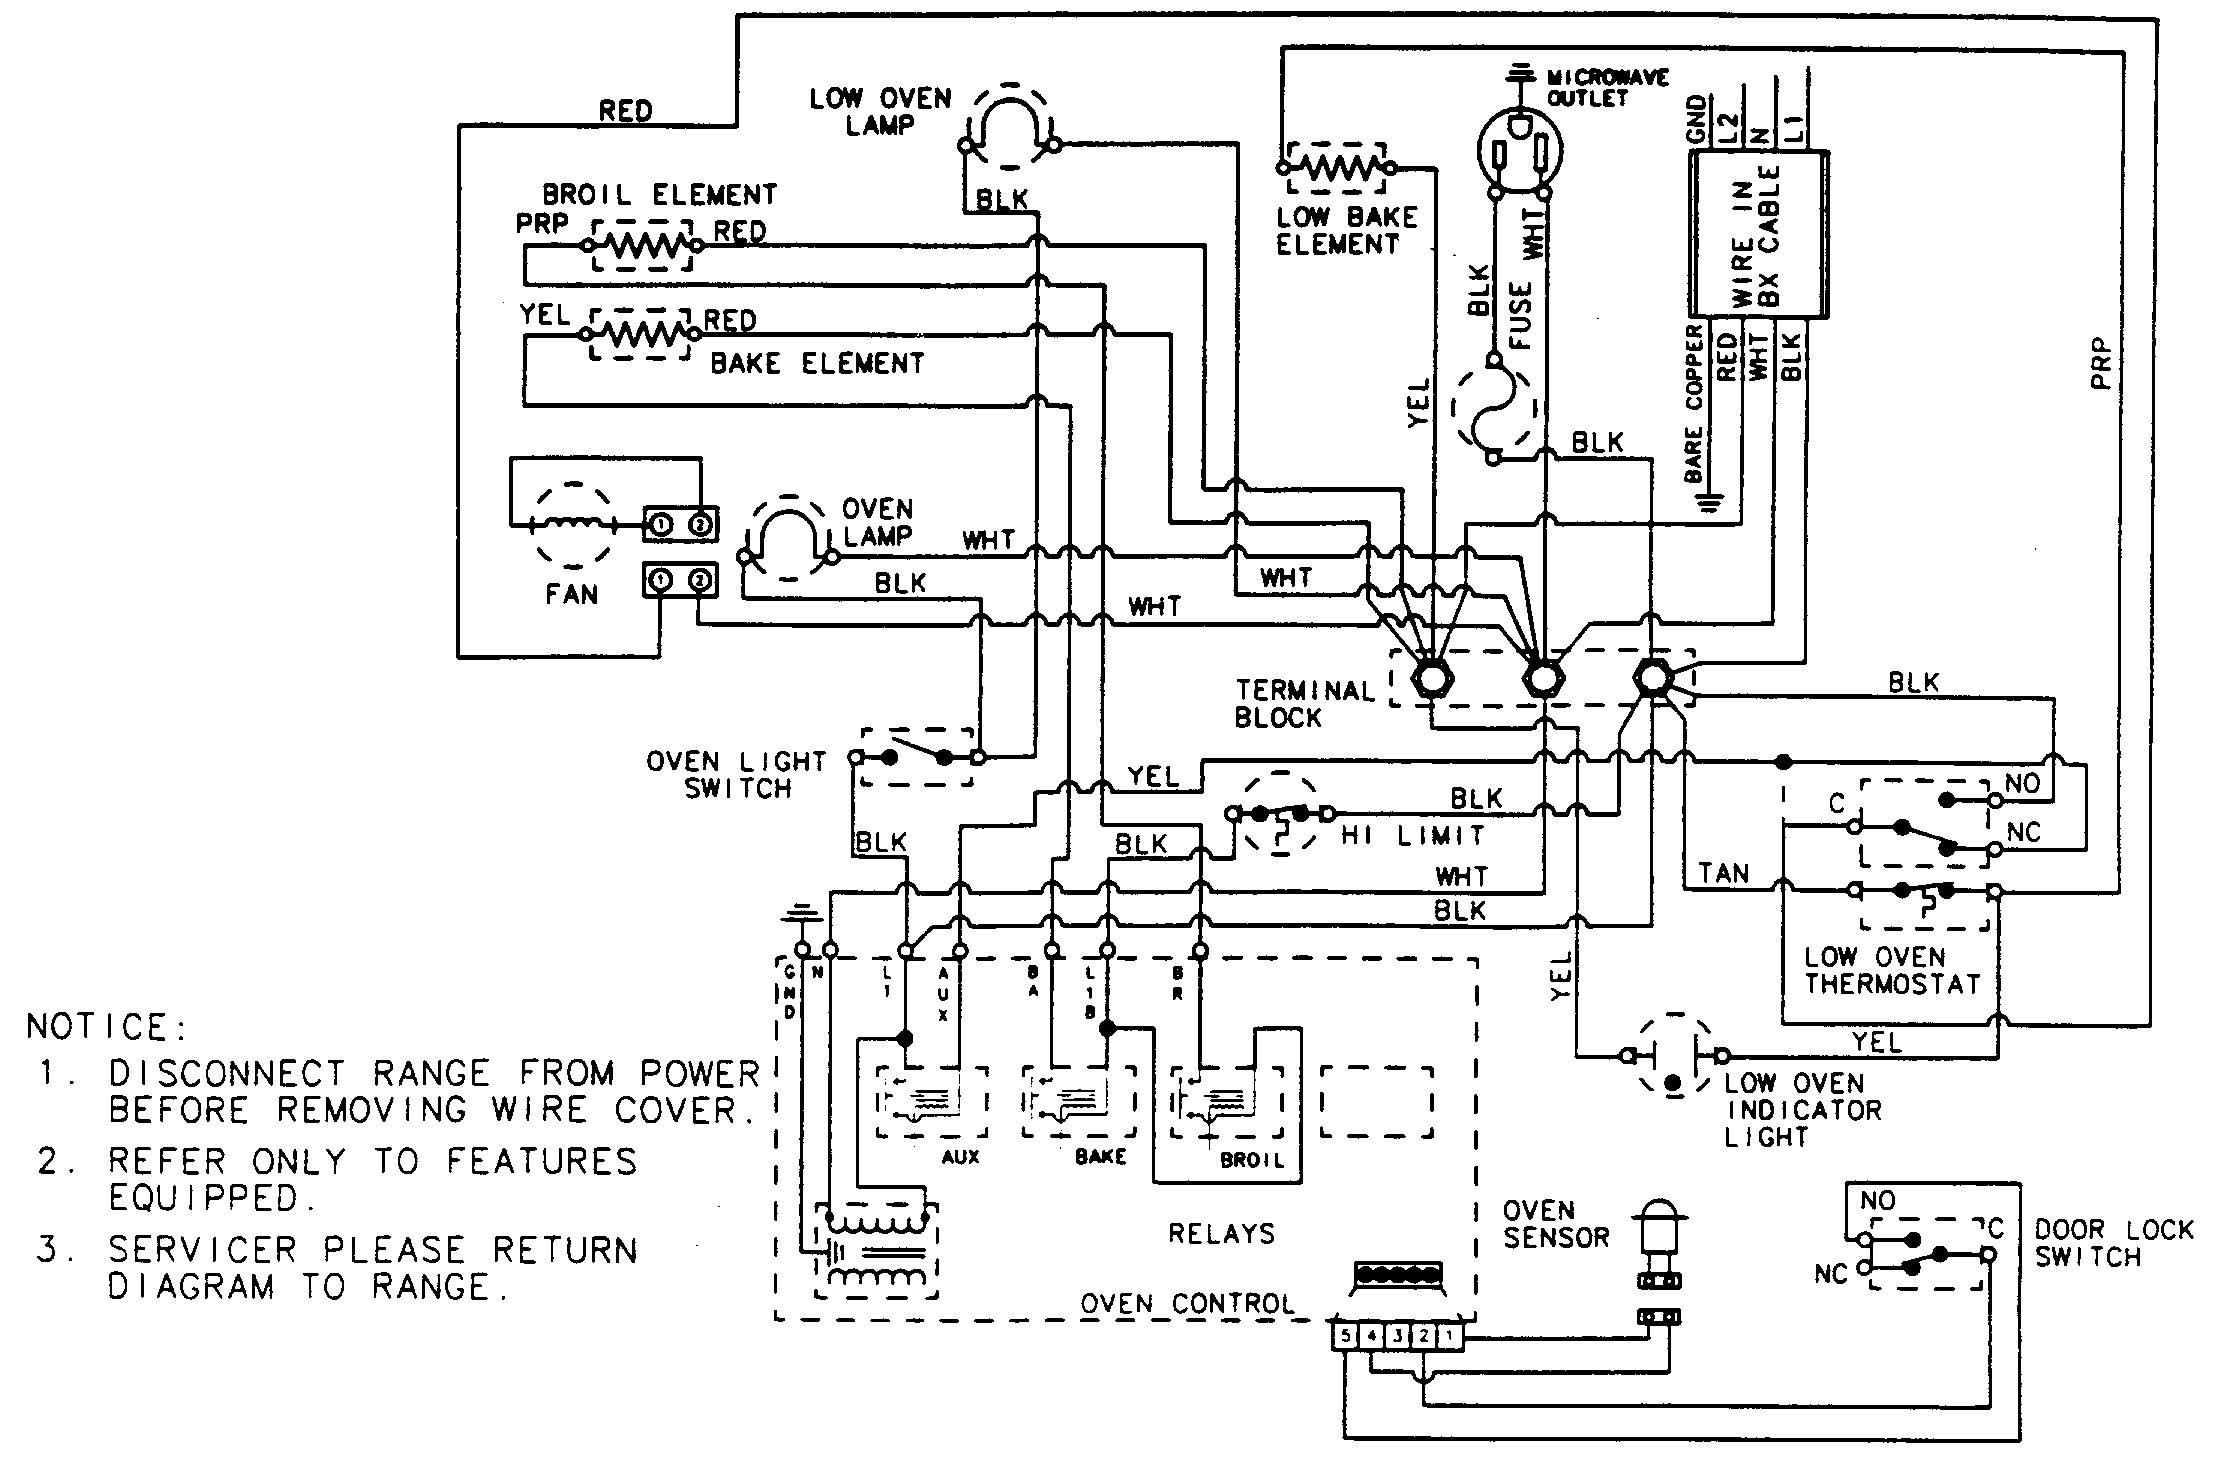 Exelent Hid Badge Readers Wiring Diagram Sketch - Electrical and ...